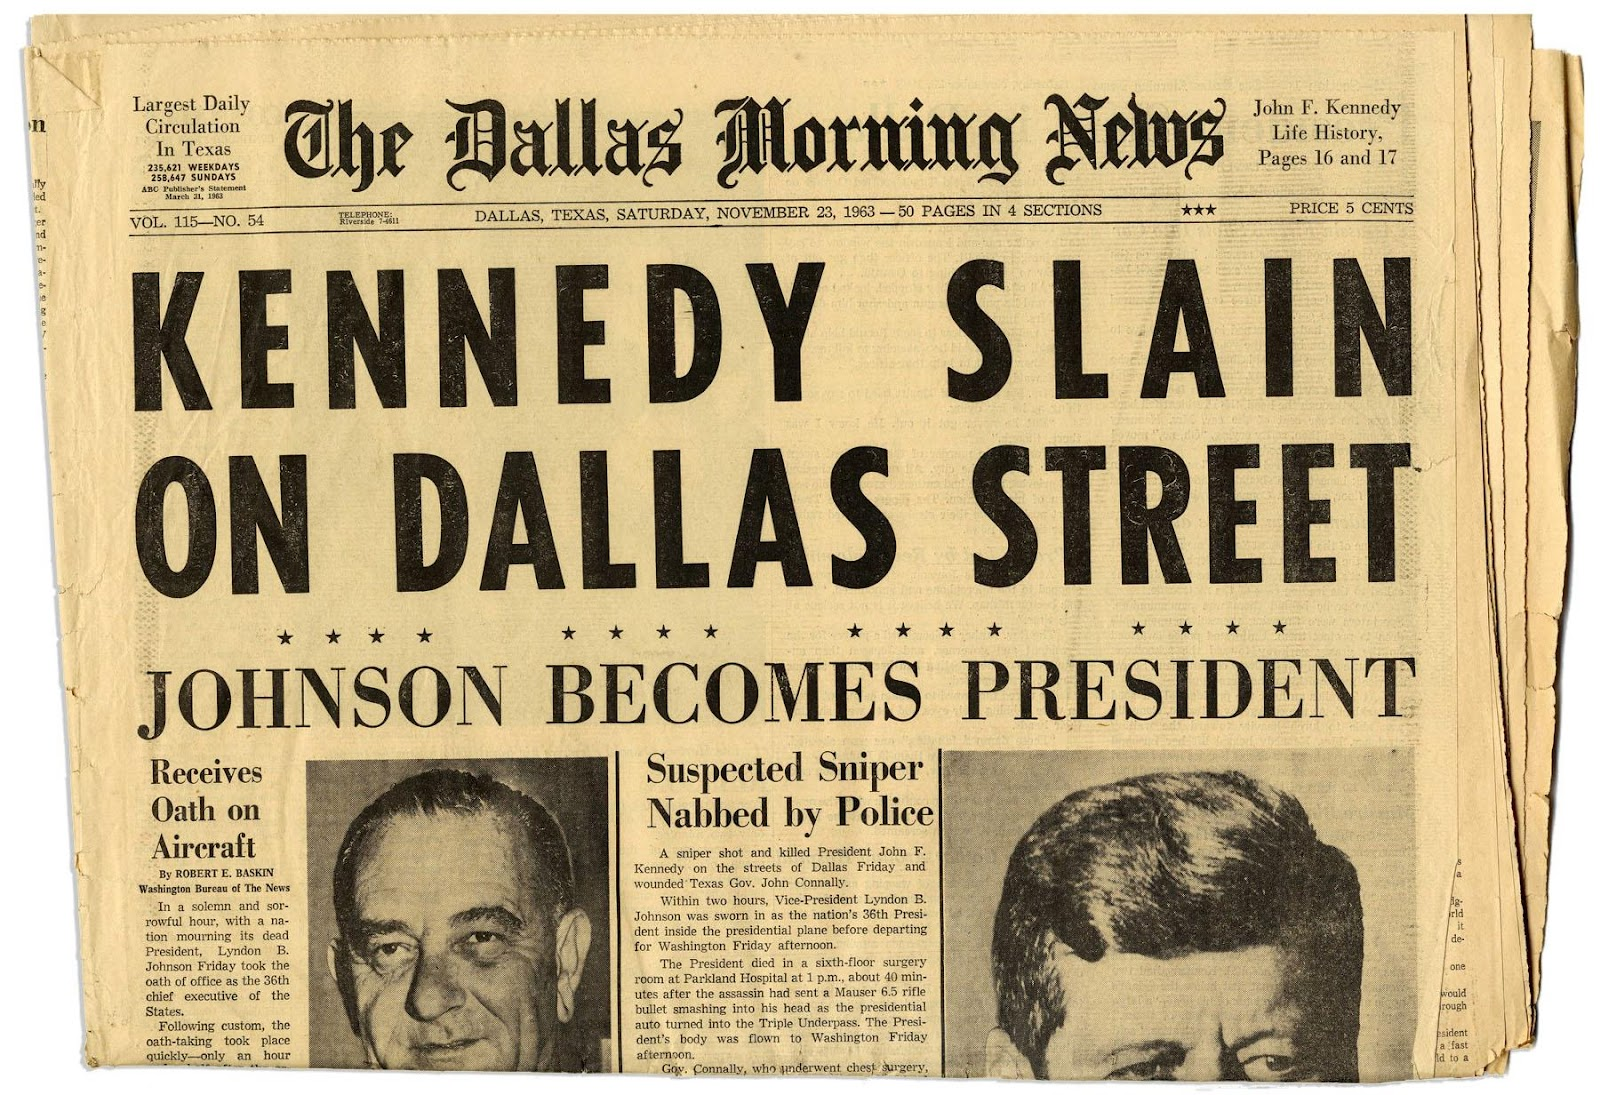 an introduction to the history of the jfk assassination John f kennedy's grandson, jack schlossberg, writes about why the declassified files have become a distraction in politics.